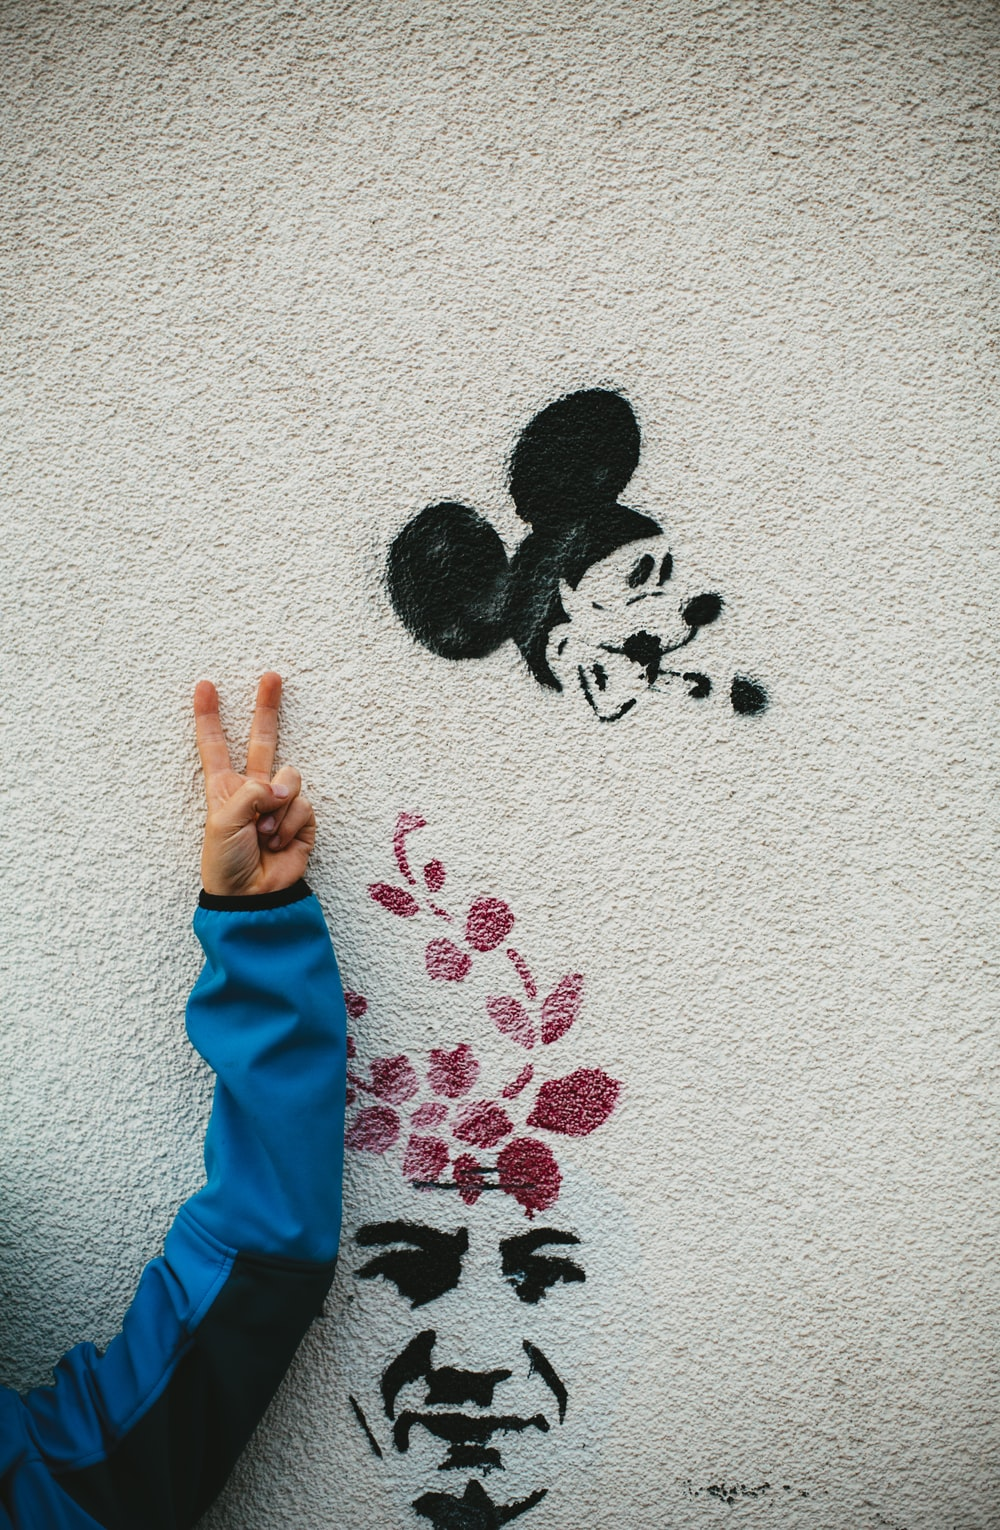 Mickey Mouse and man's face painted on the wall